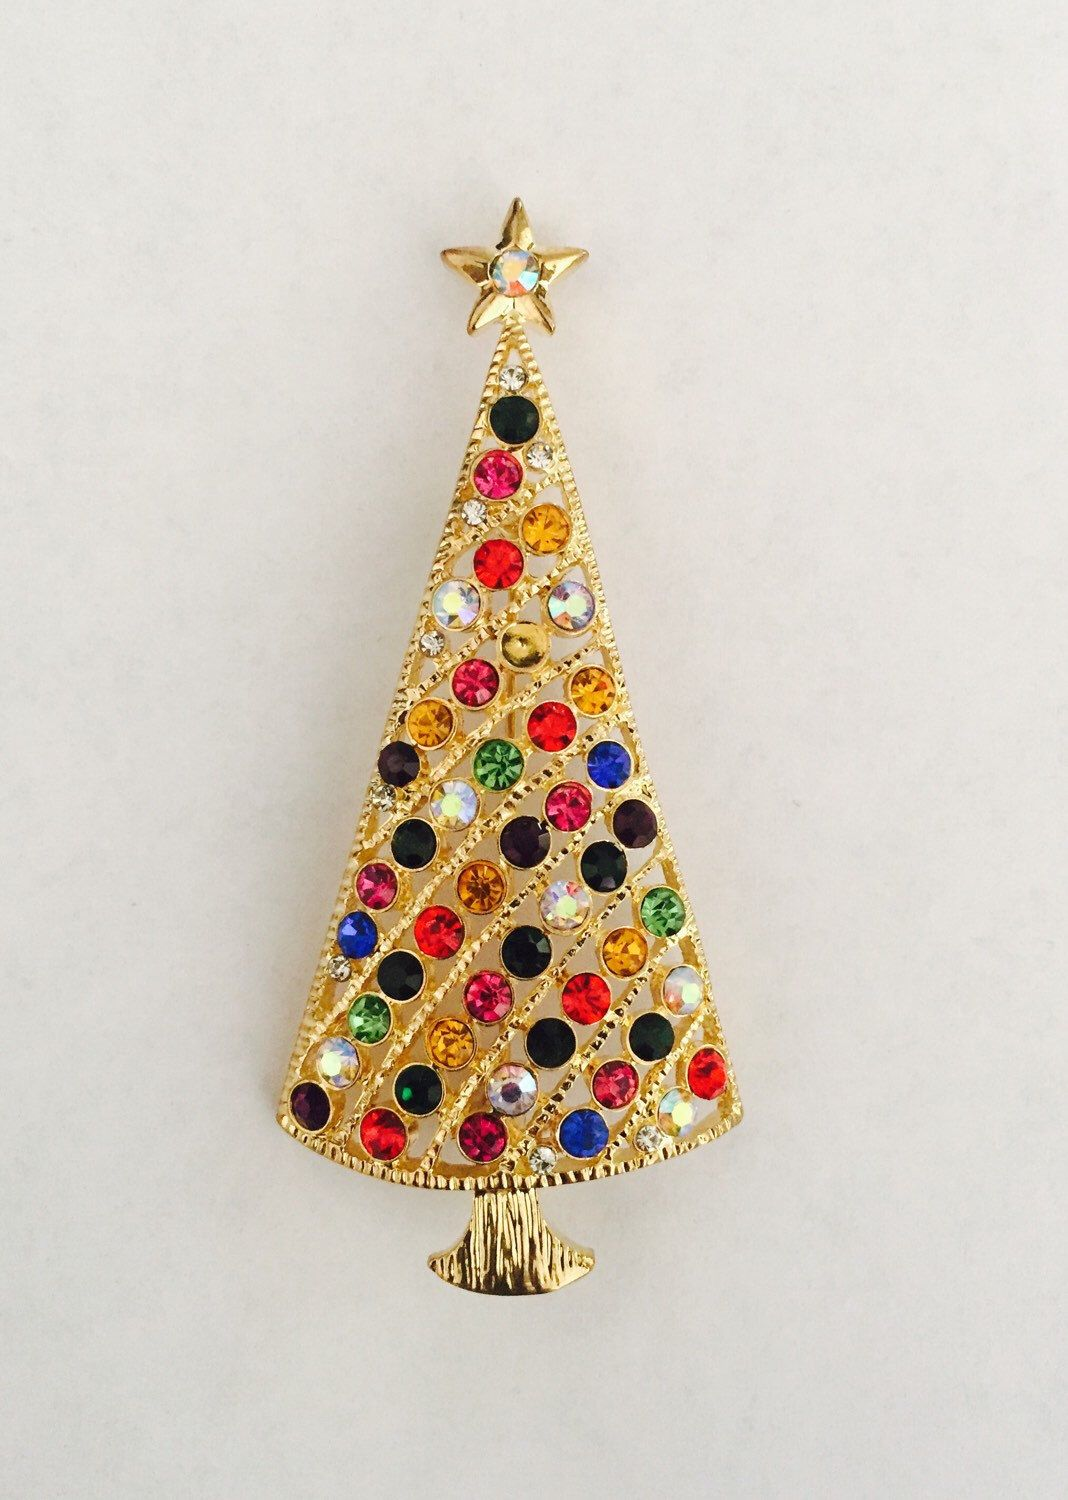 "Colorful Christmas Tree Brooch 3 x1 1/2"" Finishing Piece for Outfit Tote Purse Hat or Wedding Bouquet by shoppingforbeads on Etsy https://www.etsy.com/listing/260113149/colorful-christmas-tree-brooch-3-x1-12"